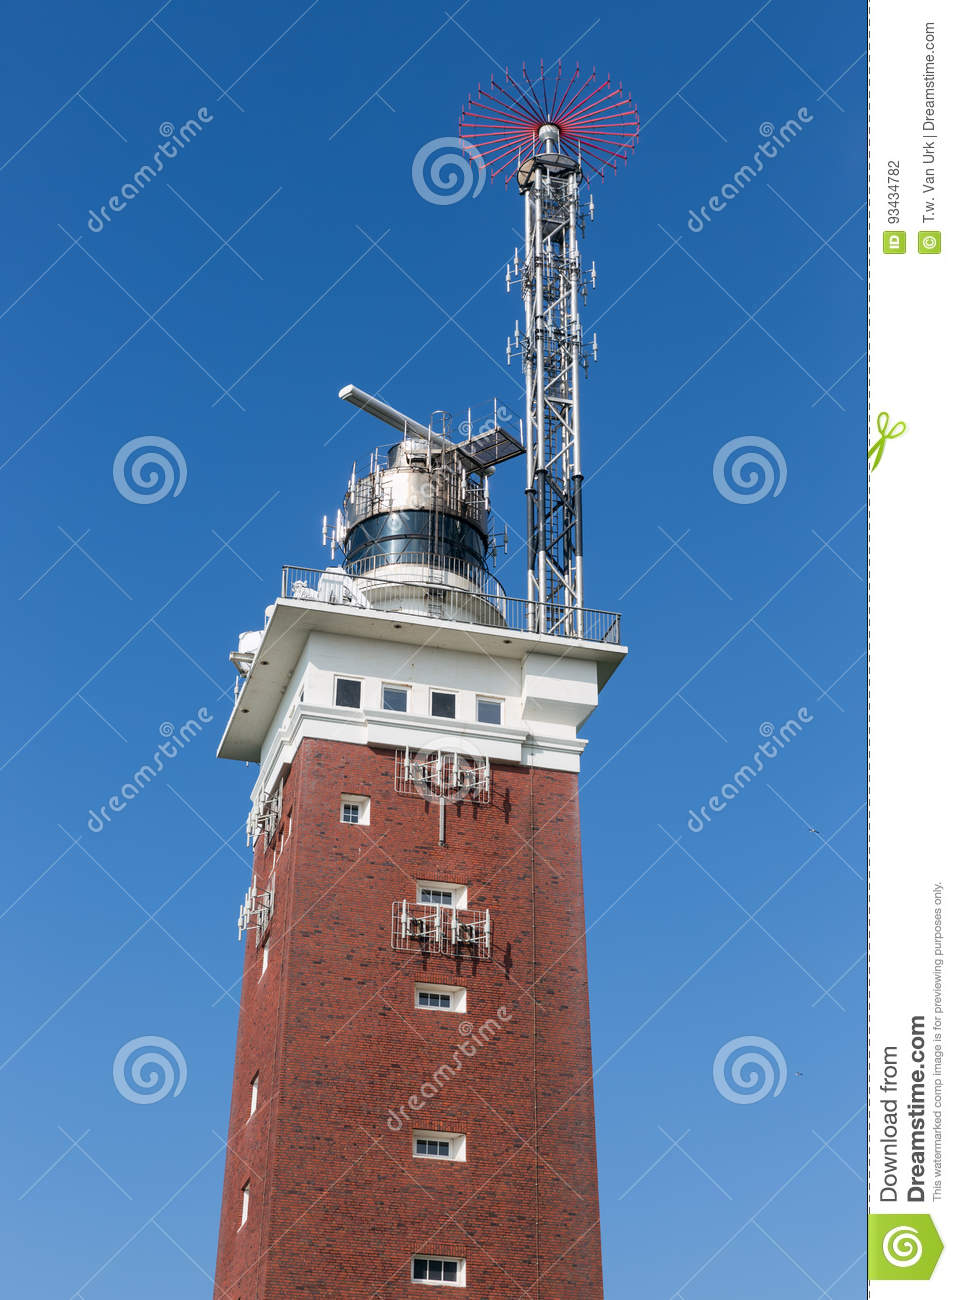 Lighthouse with telecommunication equipment at German island Helgoland